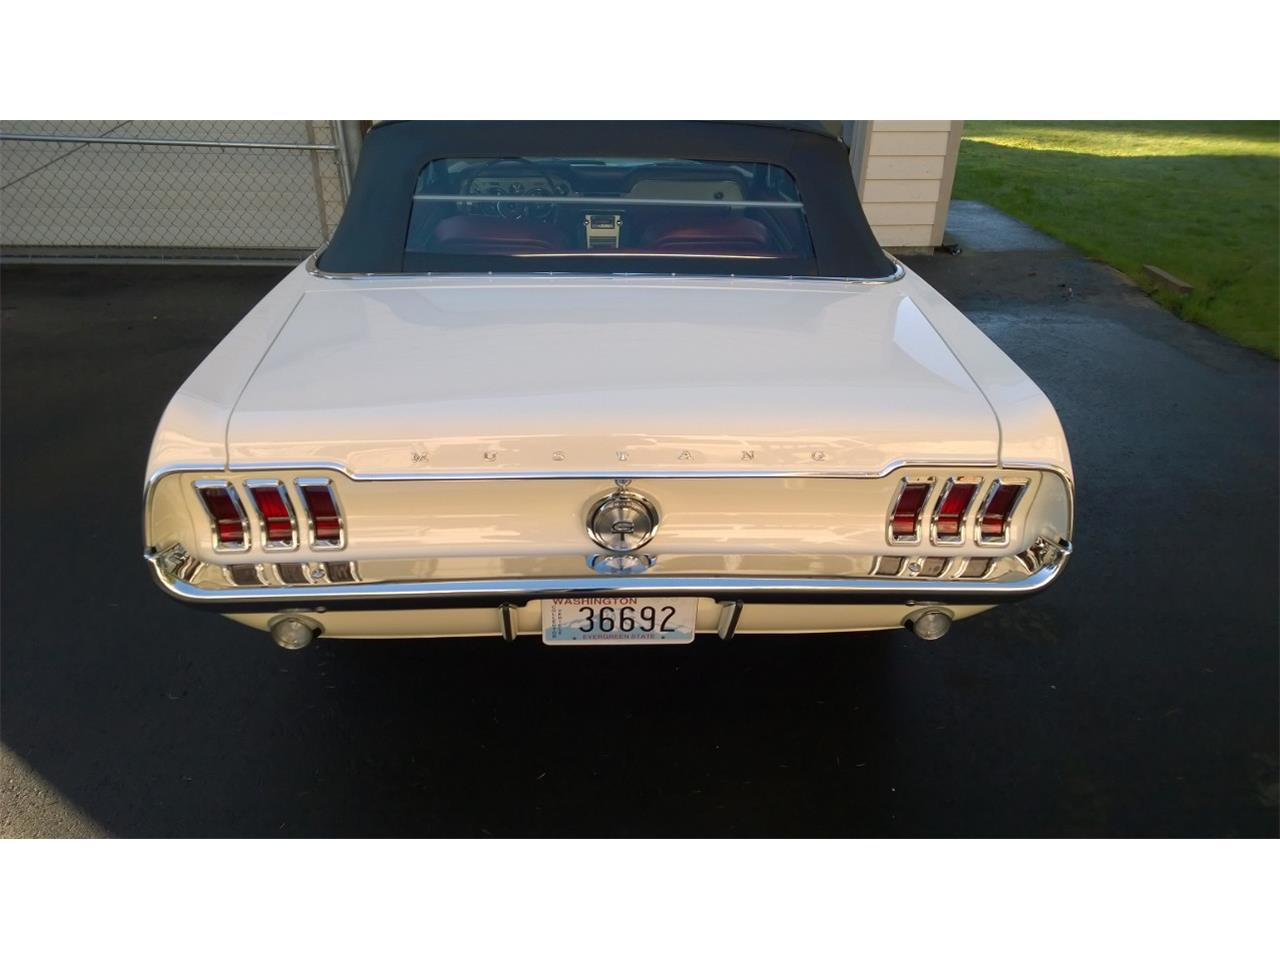 Large Picture of 1967 Ford Mustang GT located in QLD - $120,000.00 - QADD